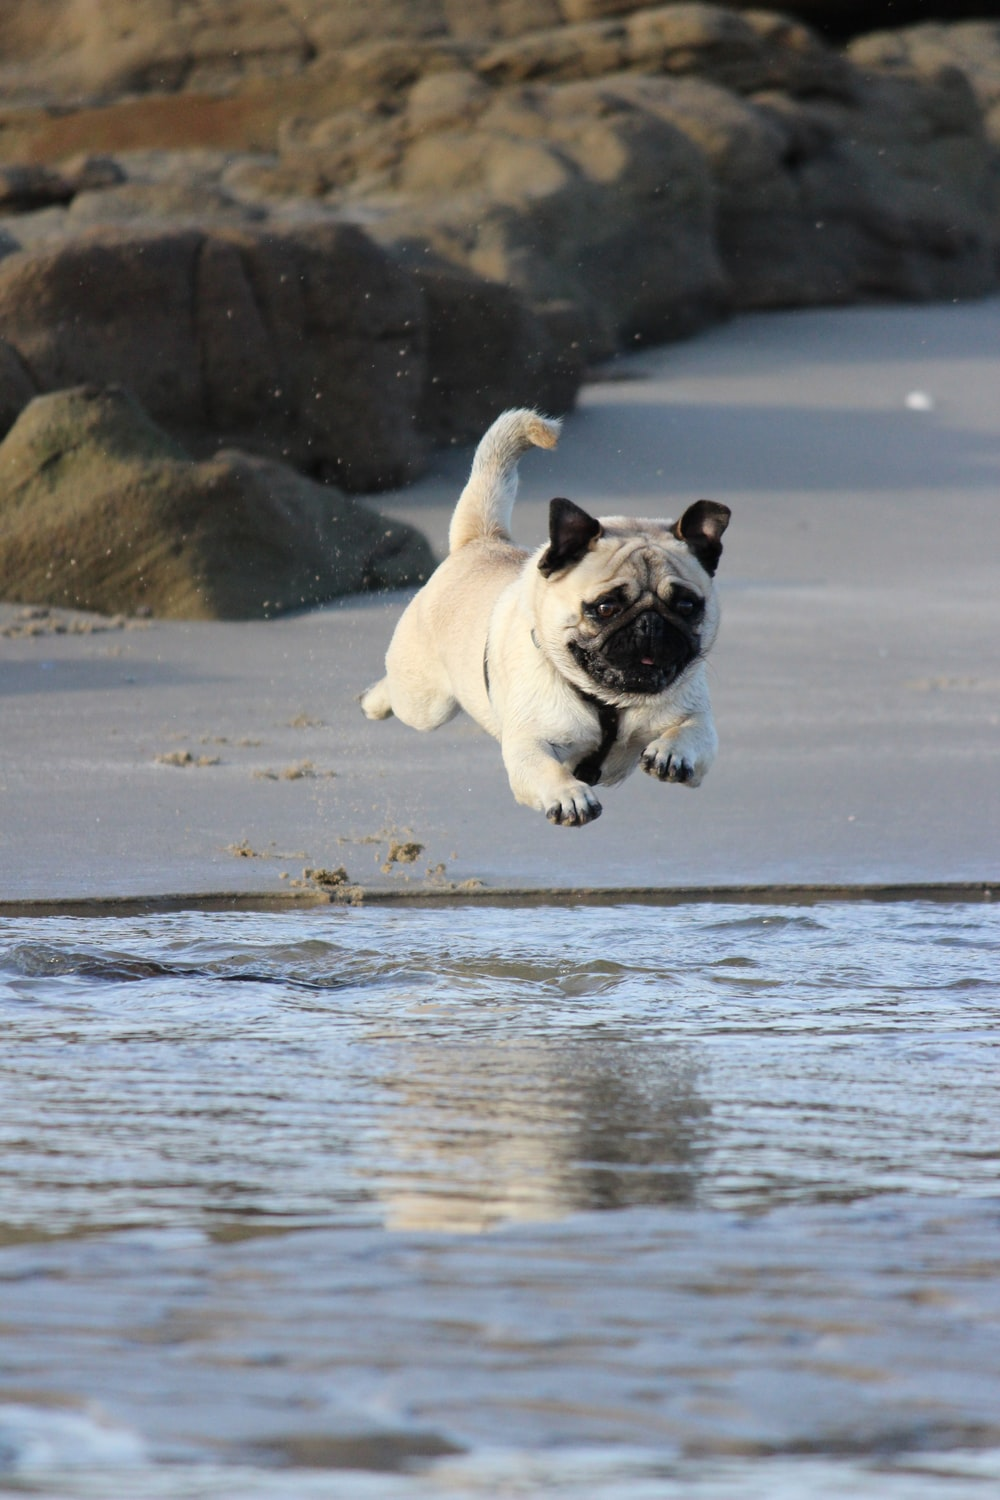 fawn pug jumping on water